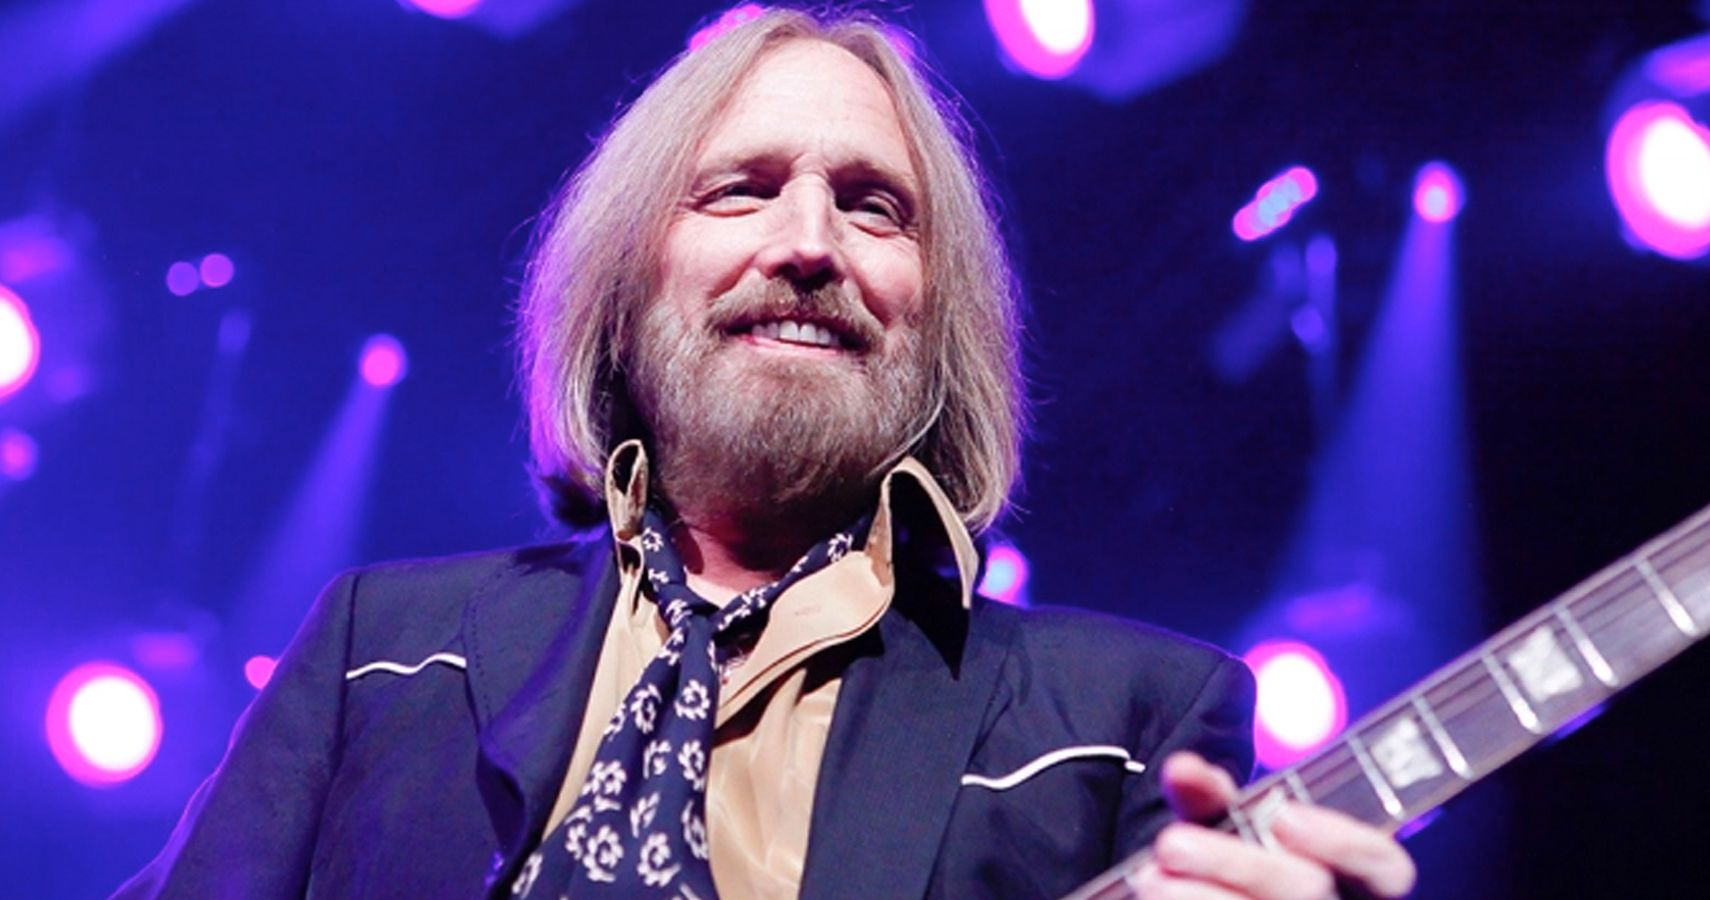 Tom Petty a singer songwriter and guitarist who melded California rock with a deep stubborn Southern heritage to produce a long string of durable hits